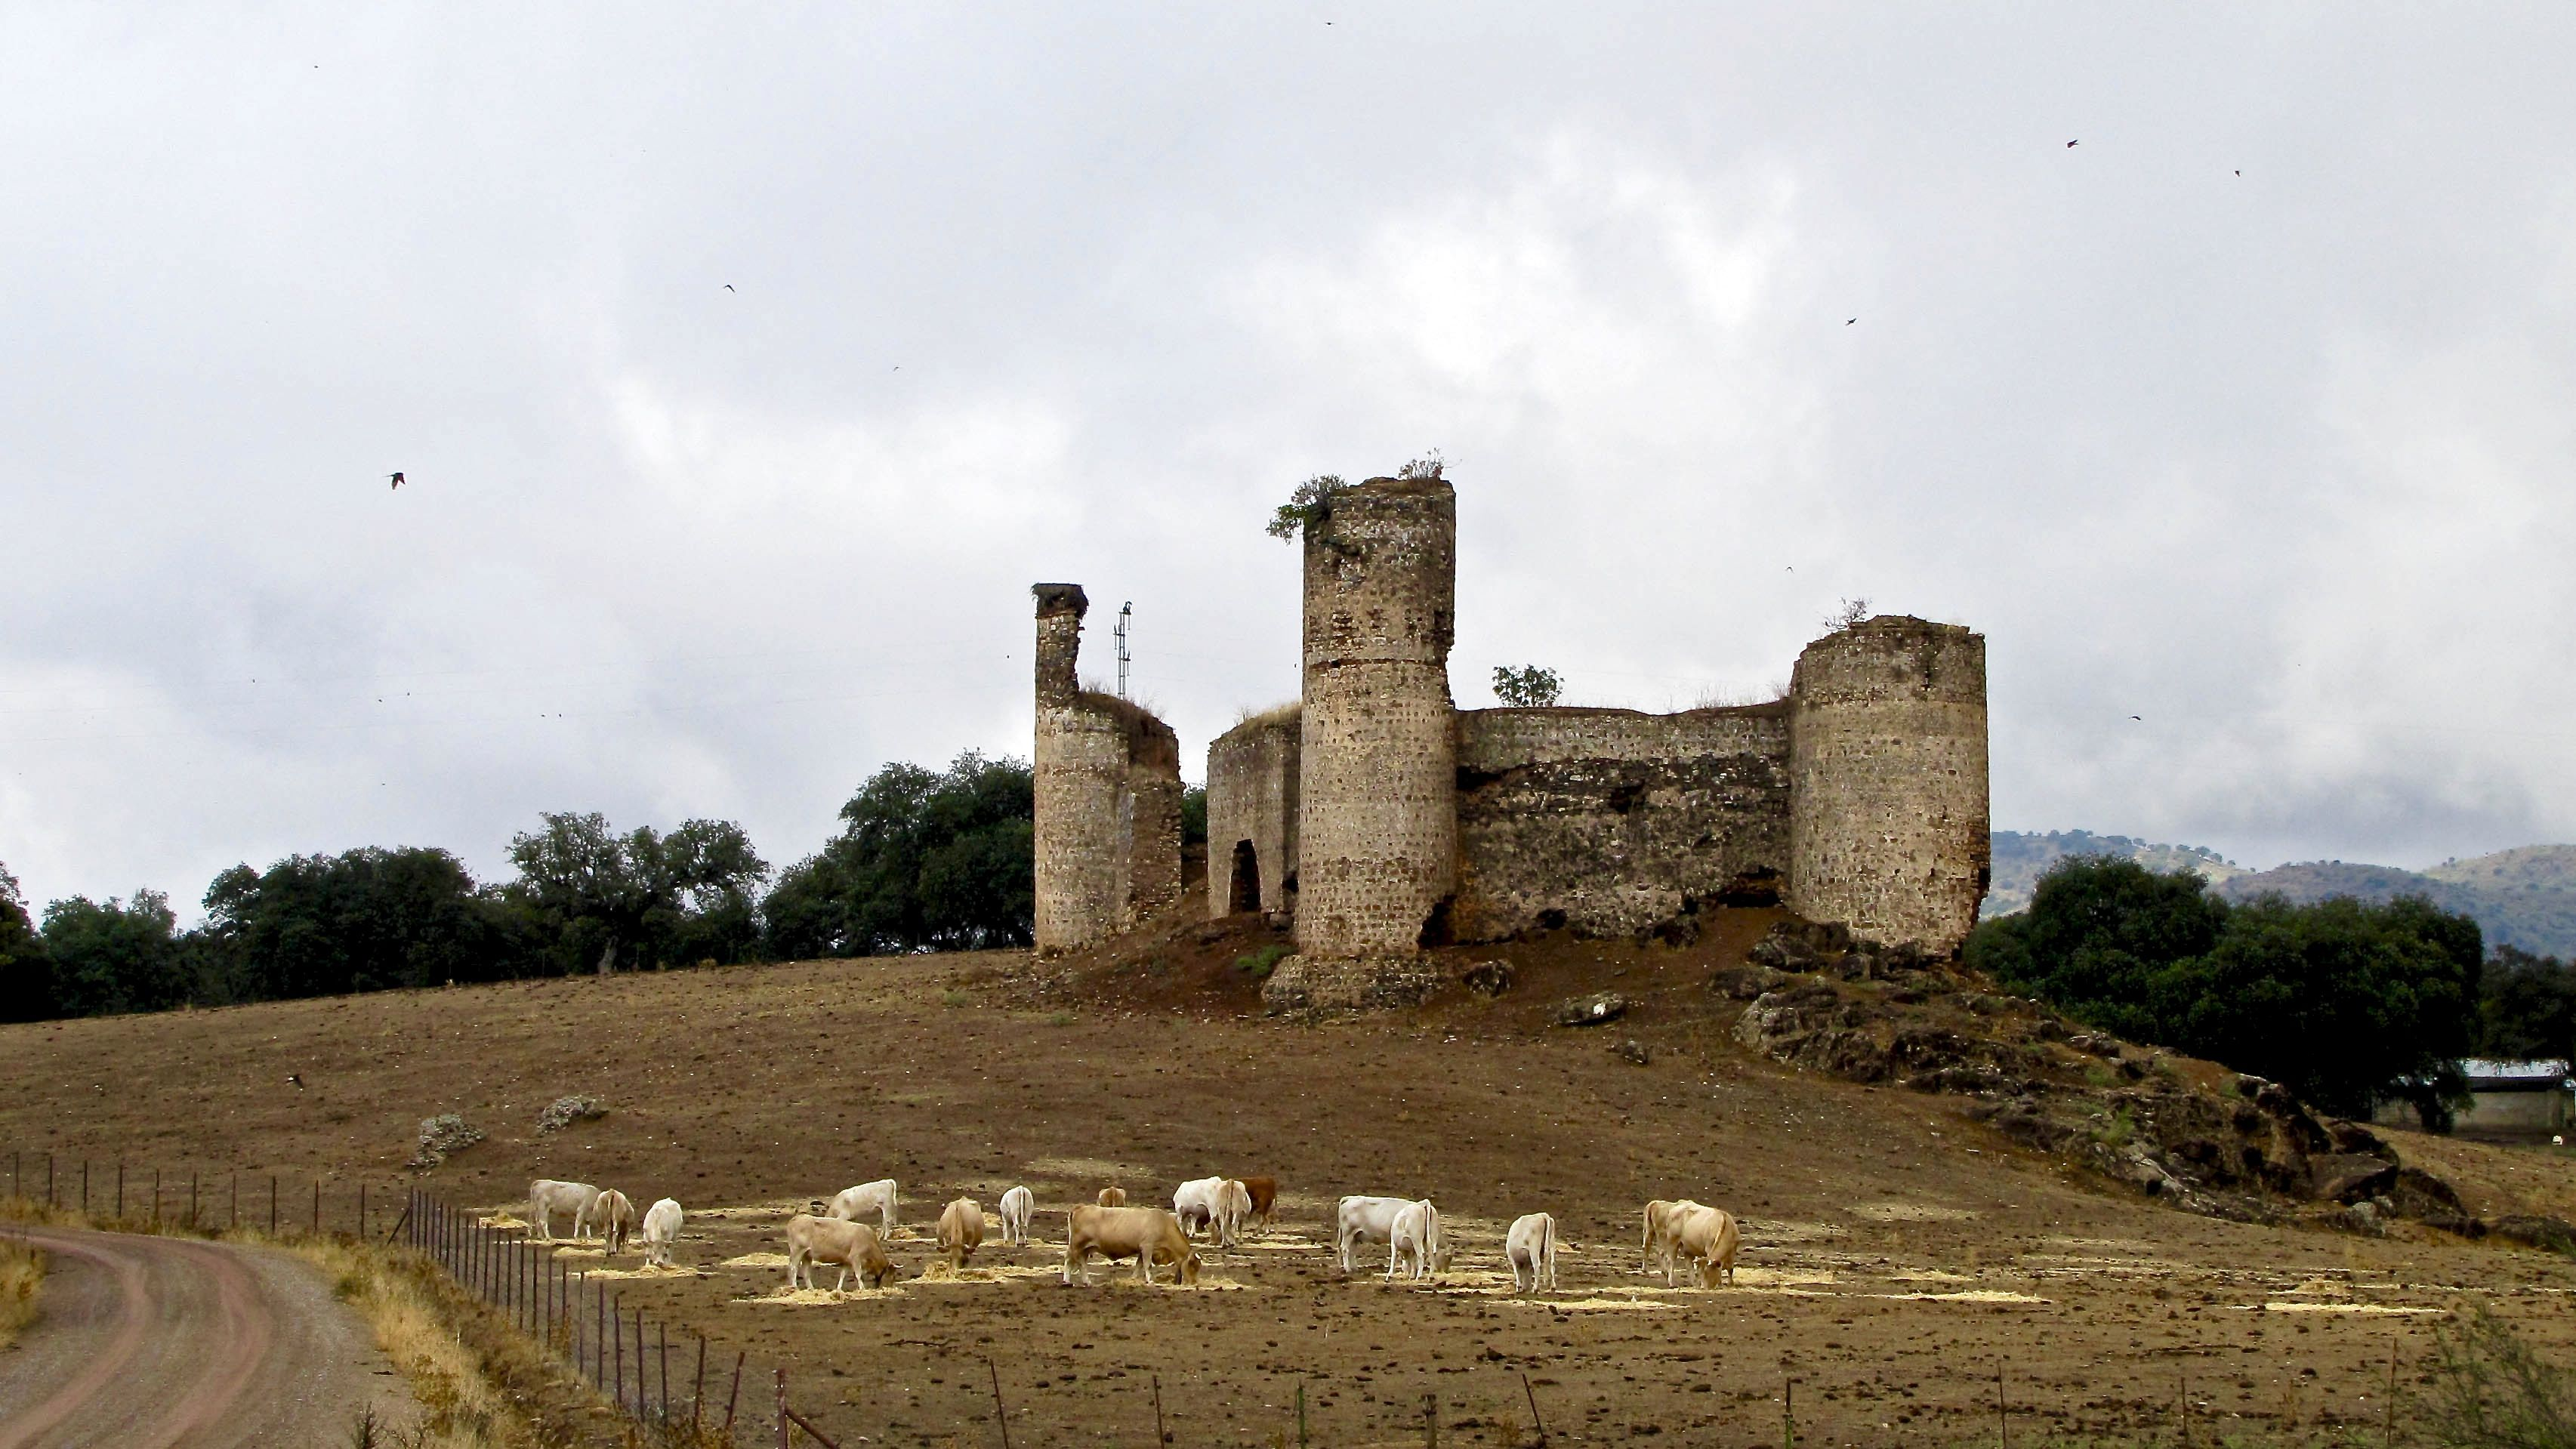 Sheep By Old Castle Near El Real De La Jara Via De La Plata Camino